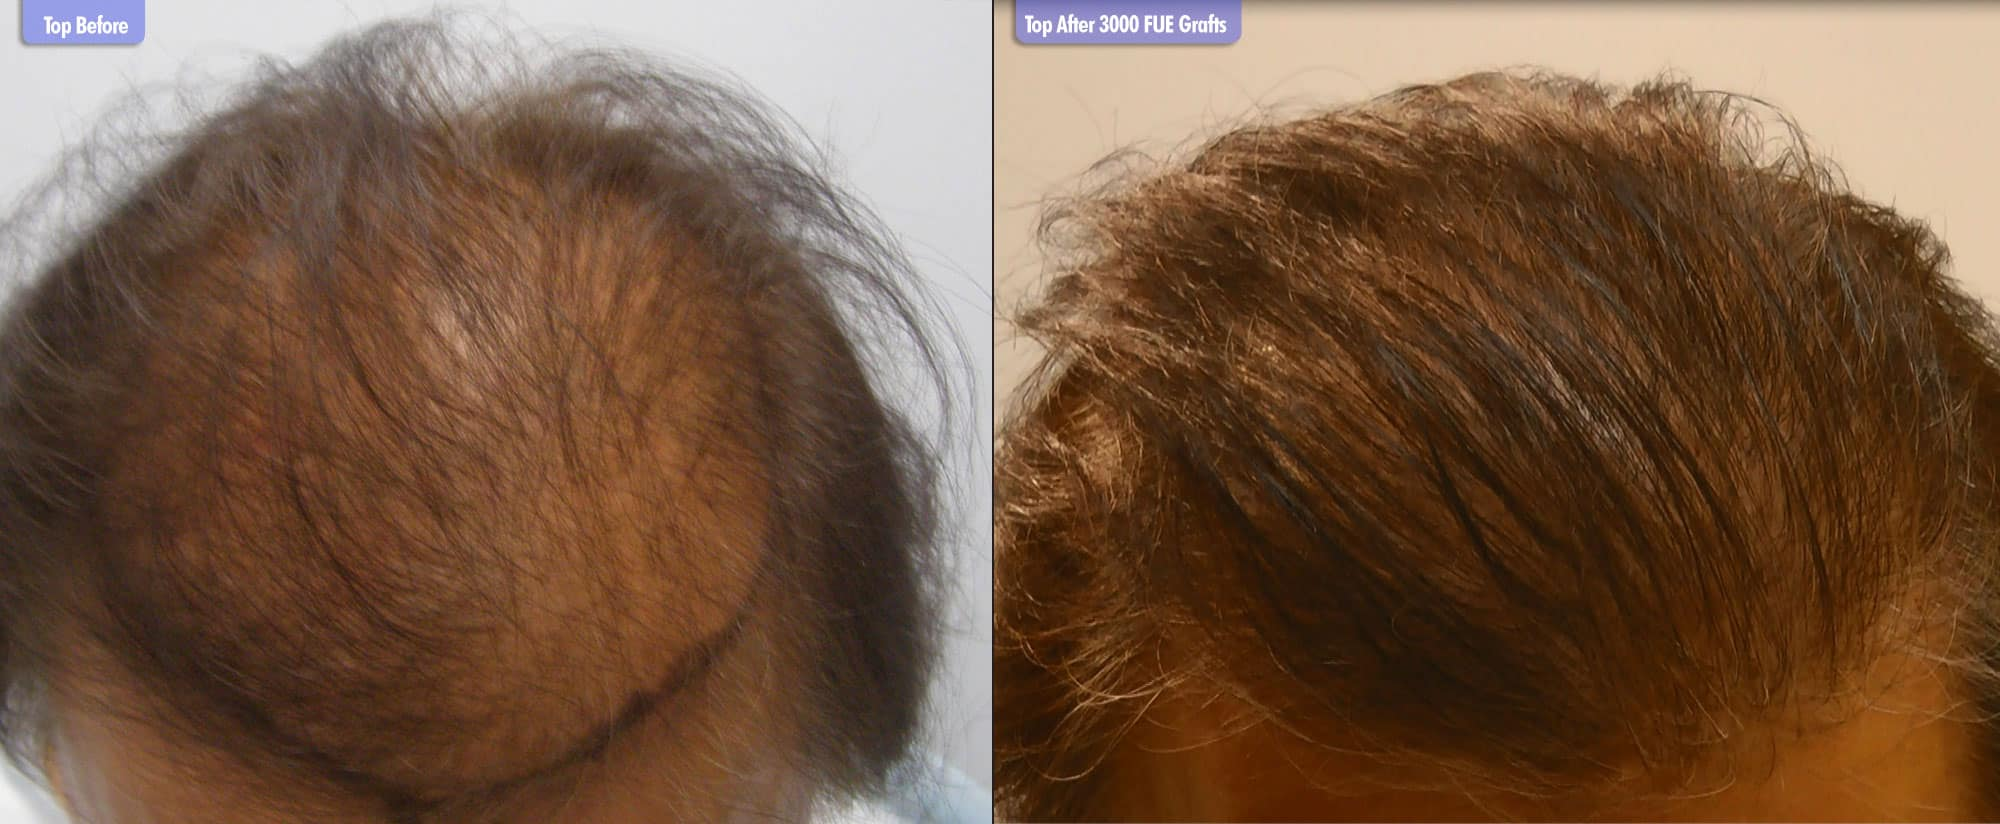 Diffuse Thinning Before & After 3000 FUE Grafts Top